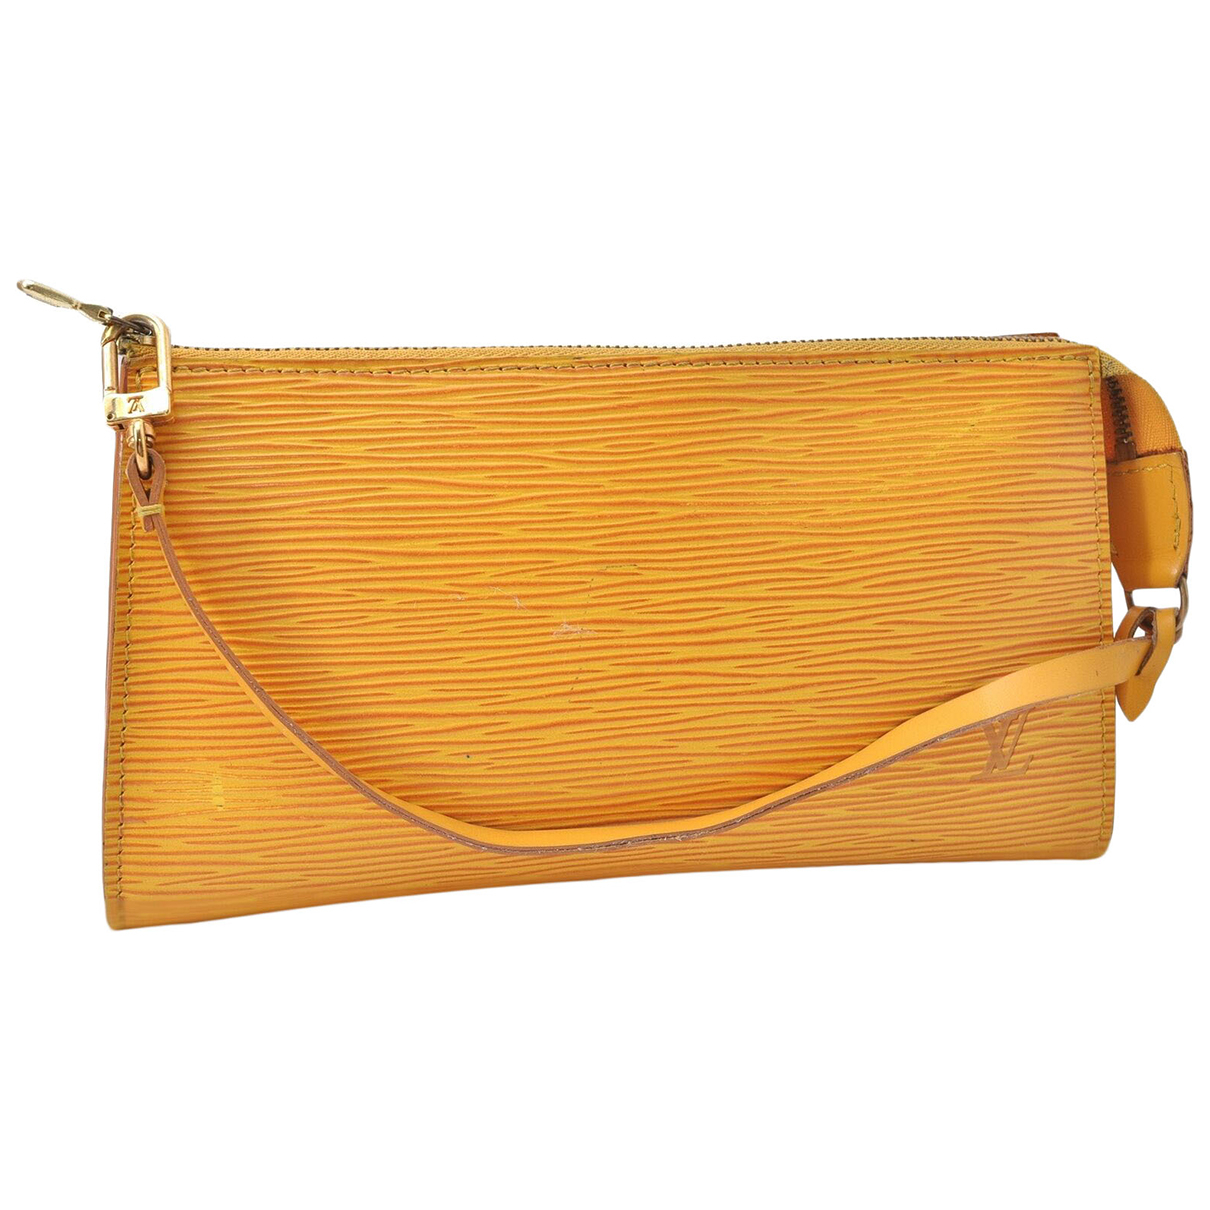 Louis Vuitton N Yellow Leather Clutch bag for Women N